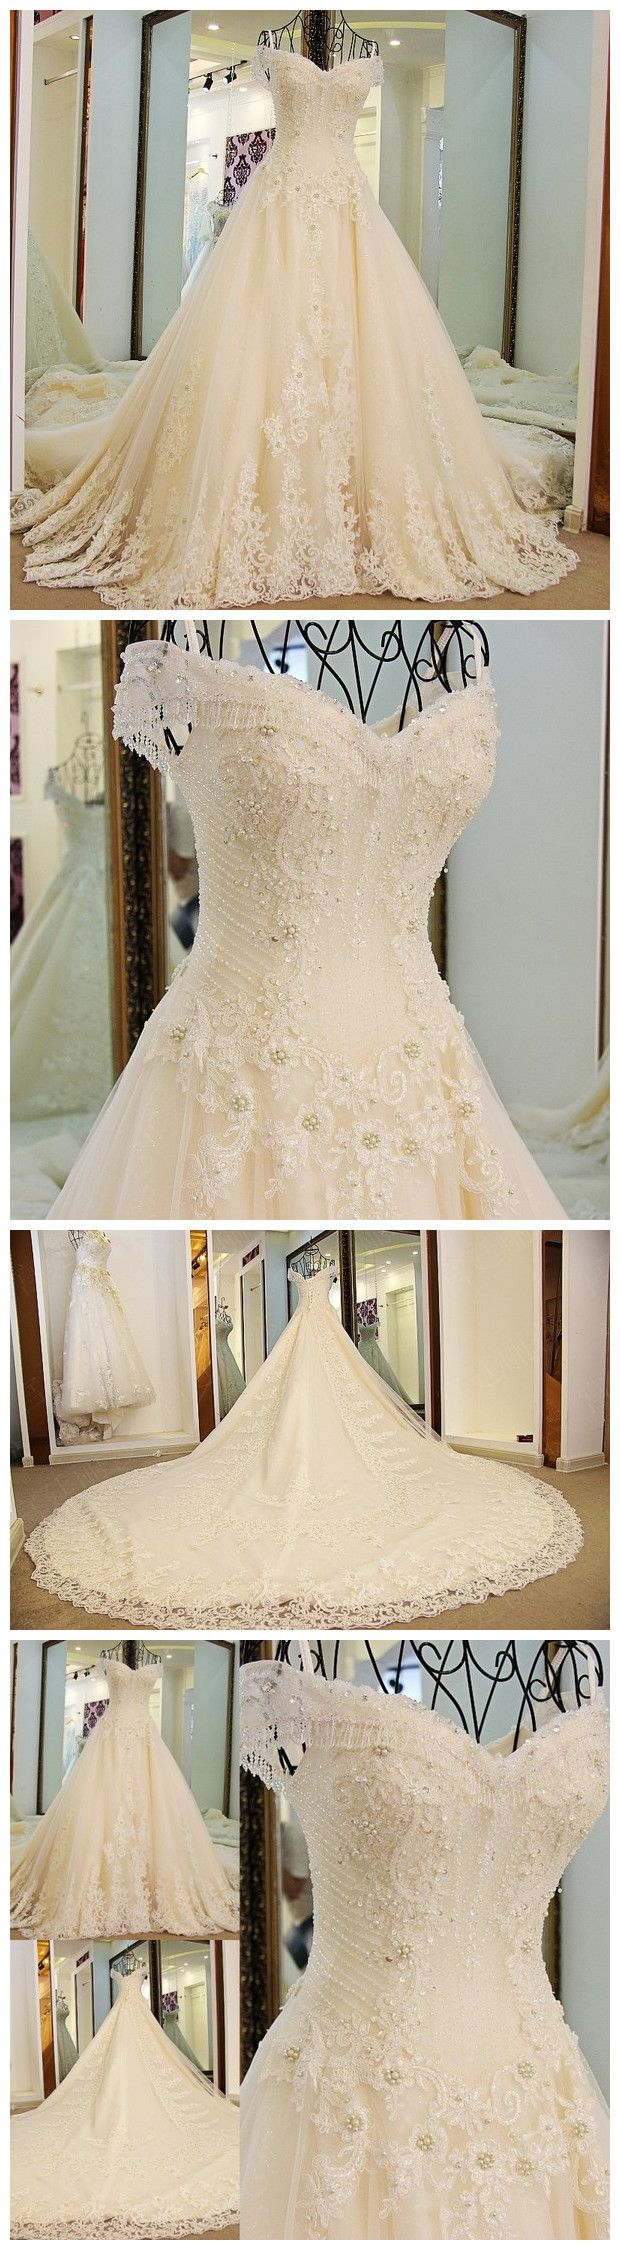 click the picture to purchase.A-line Princess Off-the-Shoulder Wedding Dresses, Gorgeous Appliqued Wedding Dresses. ASD2626 A-line Gorgeous princess wedding dresses, pure fairy tale wedding dresses. wedding dresses for autumn.